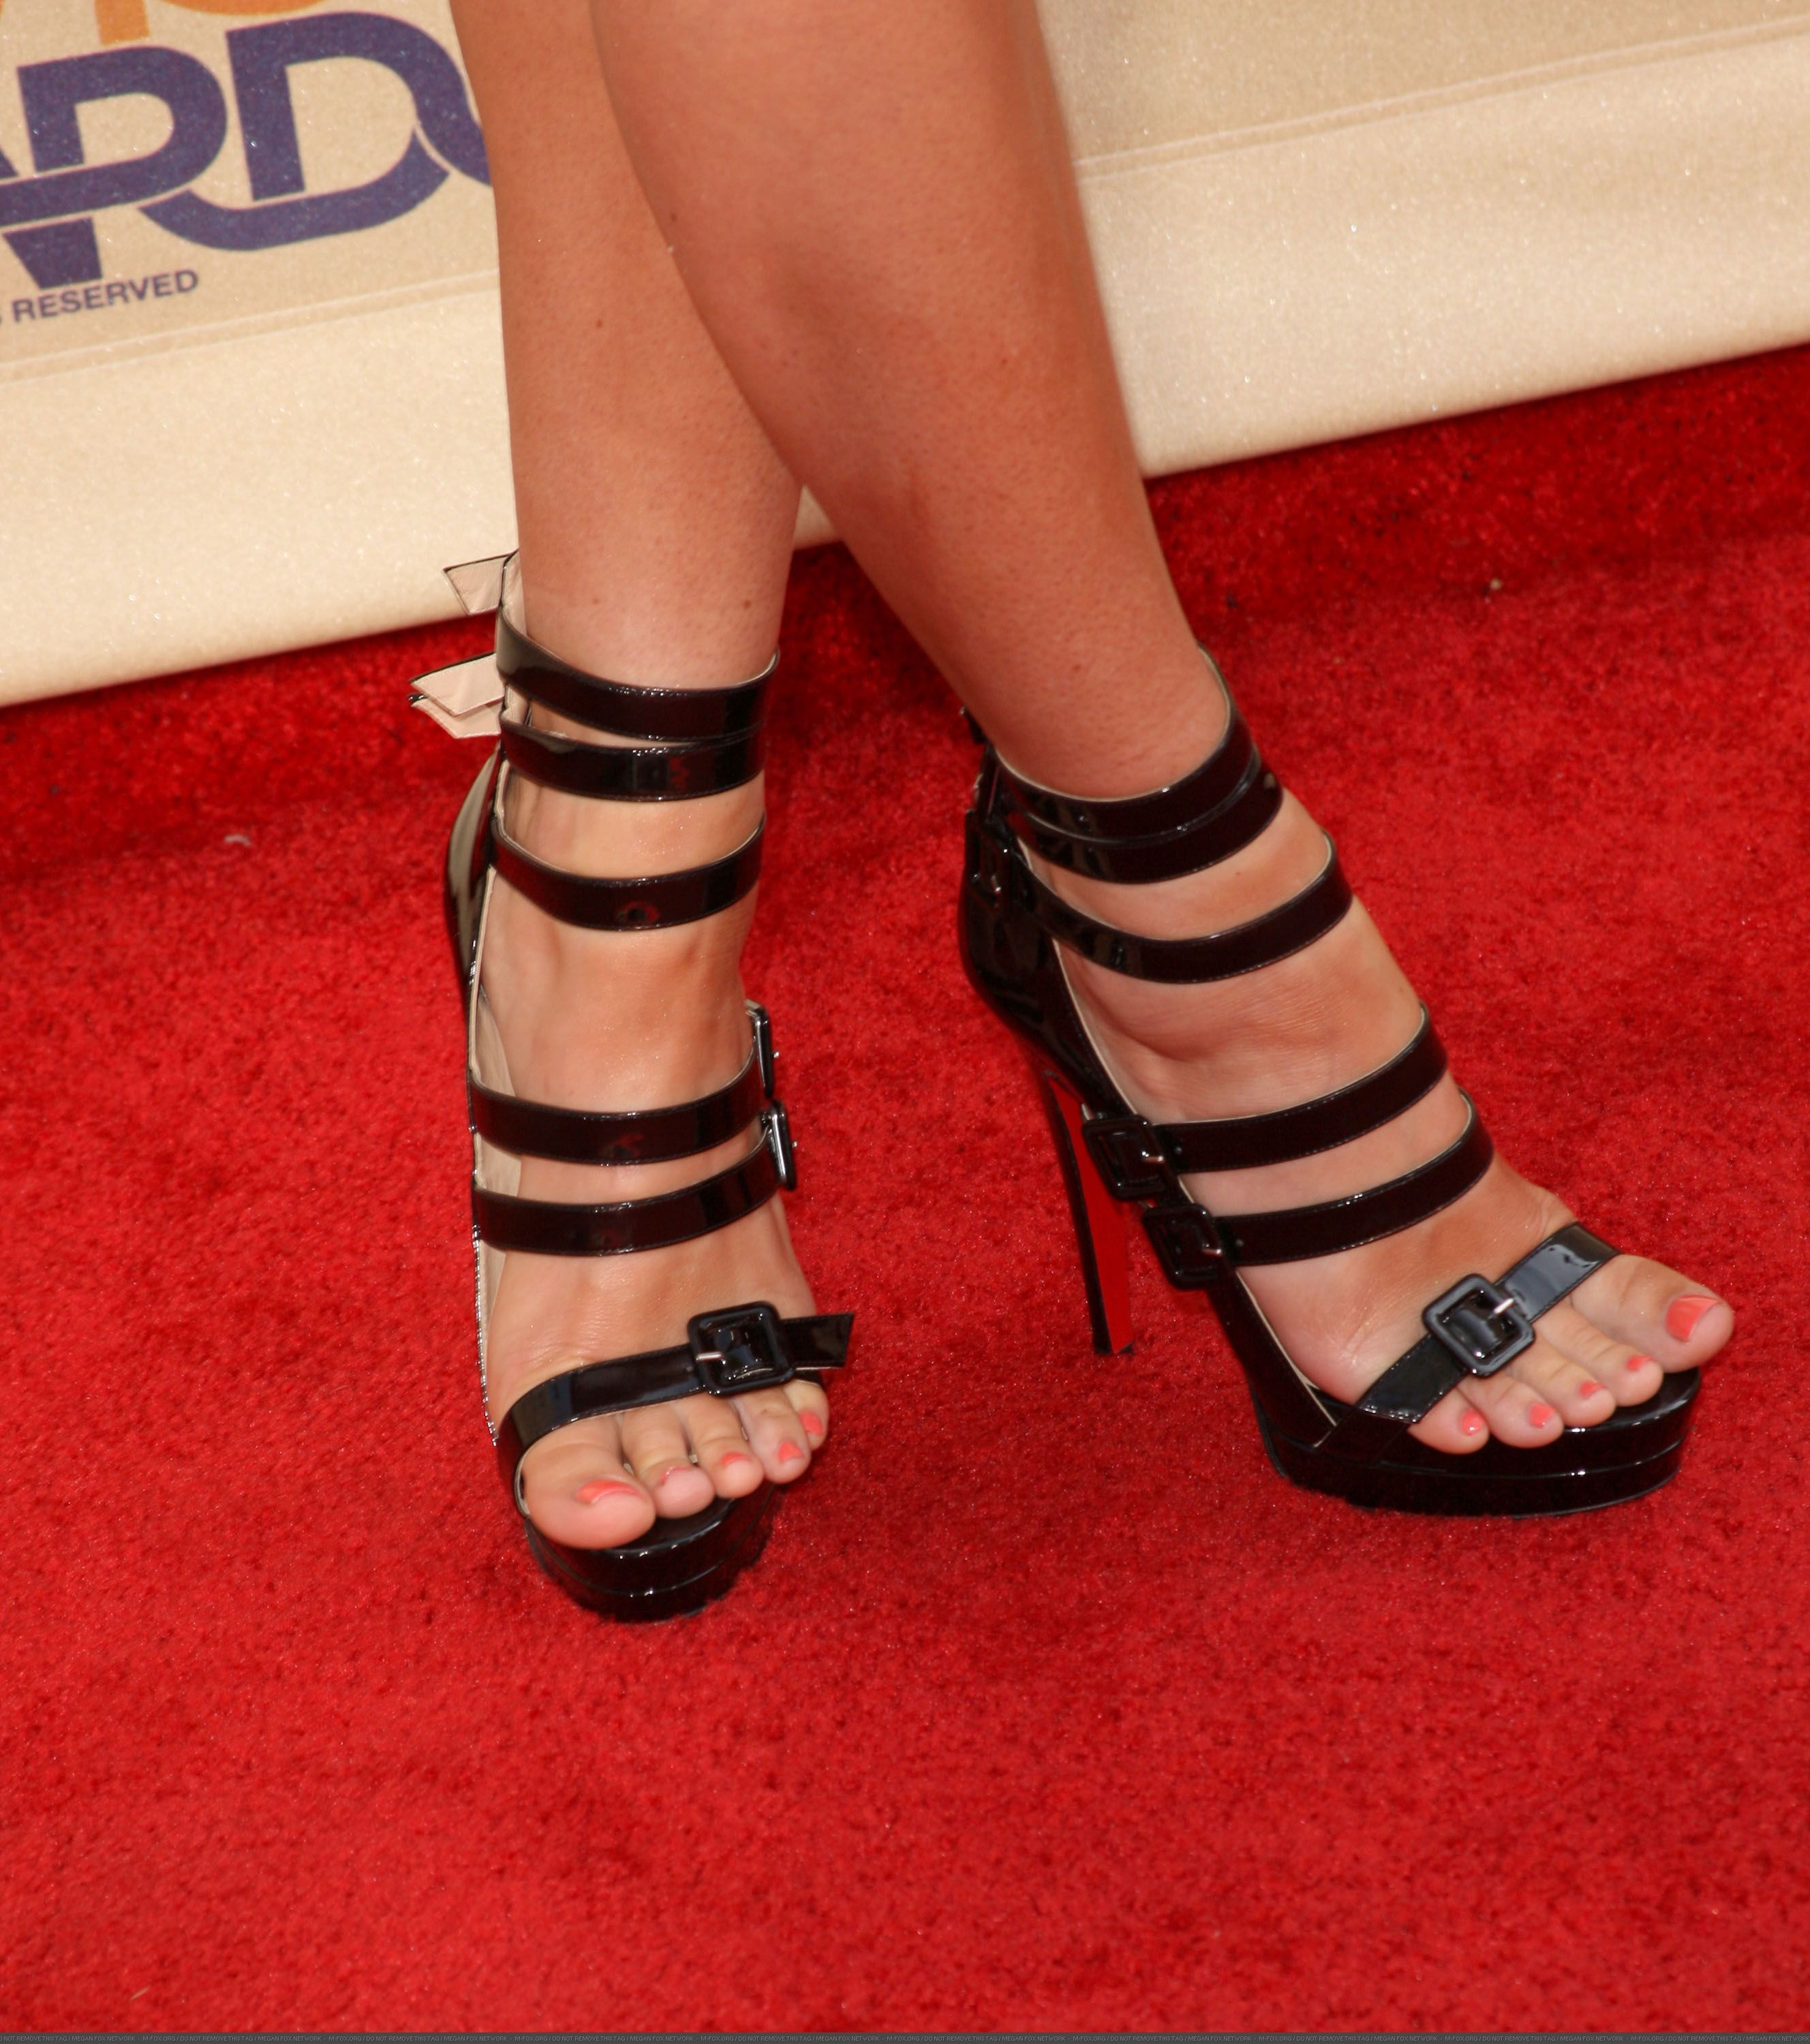 befd2b10b07 the goddess feet of megan fox in glorious sandals. | Love that style ...